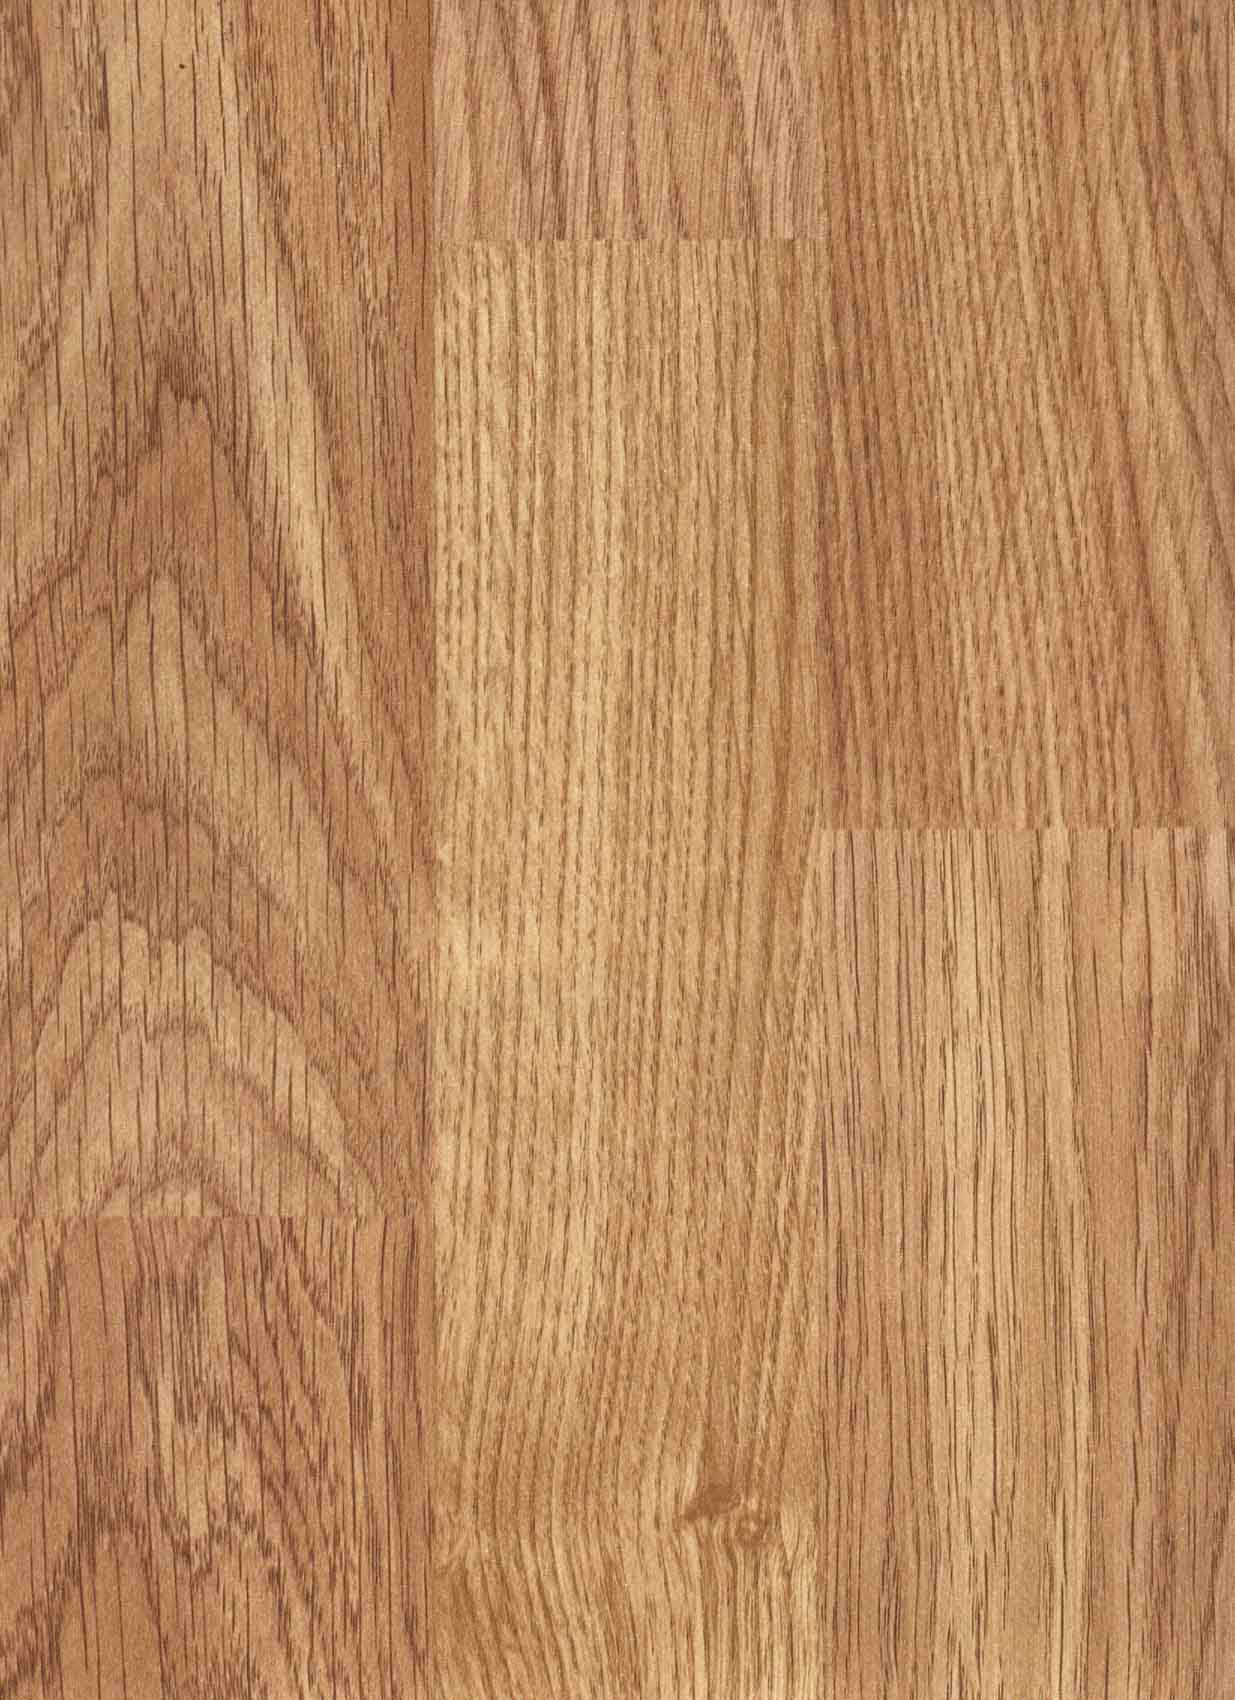 Laminate flooring laminate flooring laminated floor for Which laminate flooring